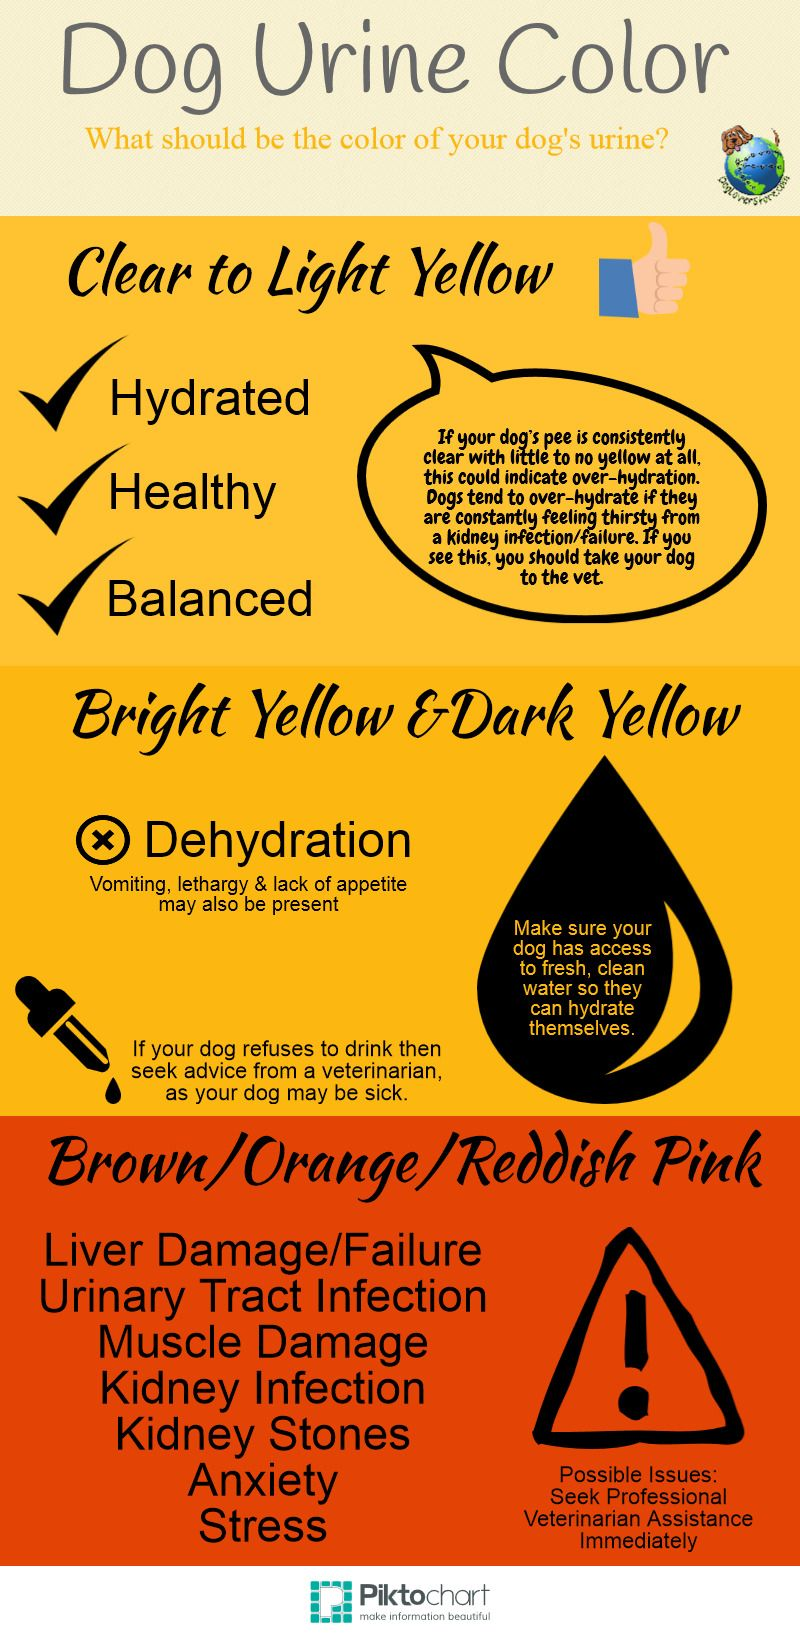 Dog urine color why is my dogs urine yellow or brownyellowred dog urine color why is my dogs urine yellow or brownyellowredorange nvjuhfo Images